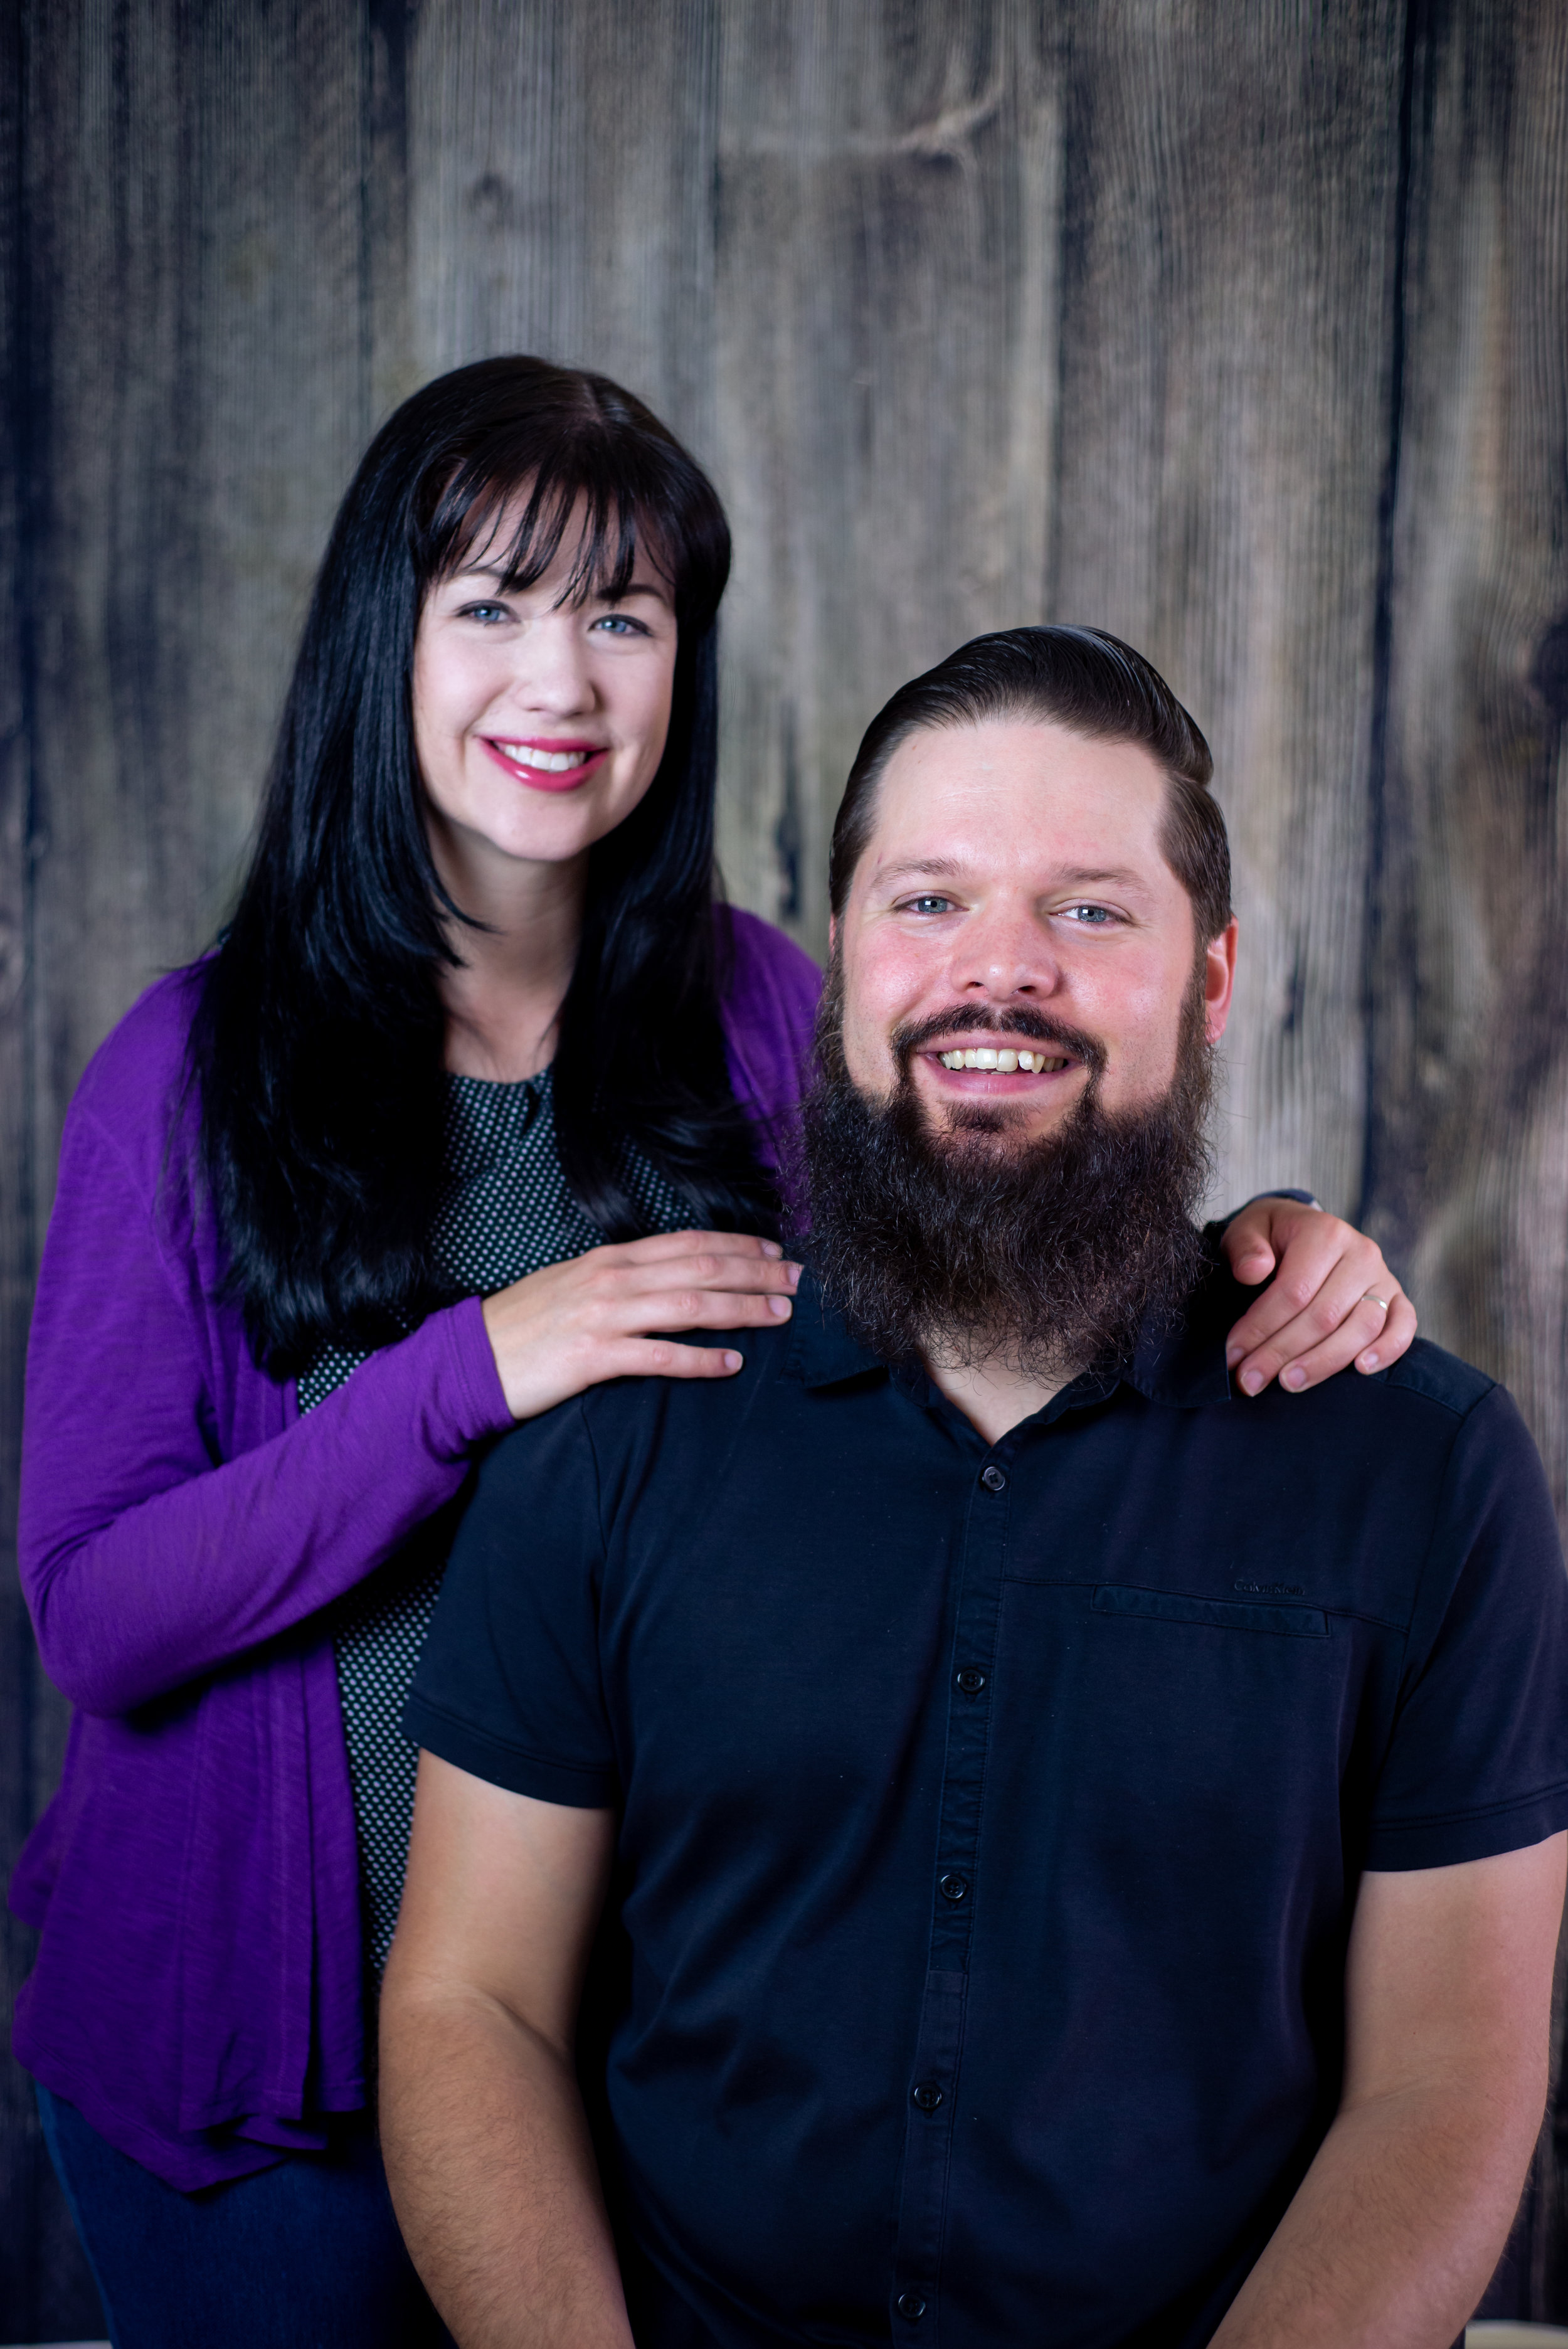 Worship & Young Families Pastor    Pastor Mark & Nichole Ryder  Pastor Mark Ryder serves as the Worship & Young Families Pastor. In 2008 he graduated from MSU with a Ministry Degree.  Mark's passion and desire is to lead people into the life-changing presence of God through a biblical example of worship. Praise builds faith, faith creates miracles, and miracles glorify God! Together Mark and Nichole lead the Young Families Life Group.